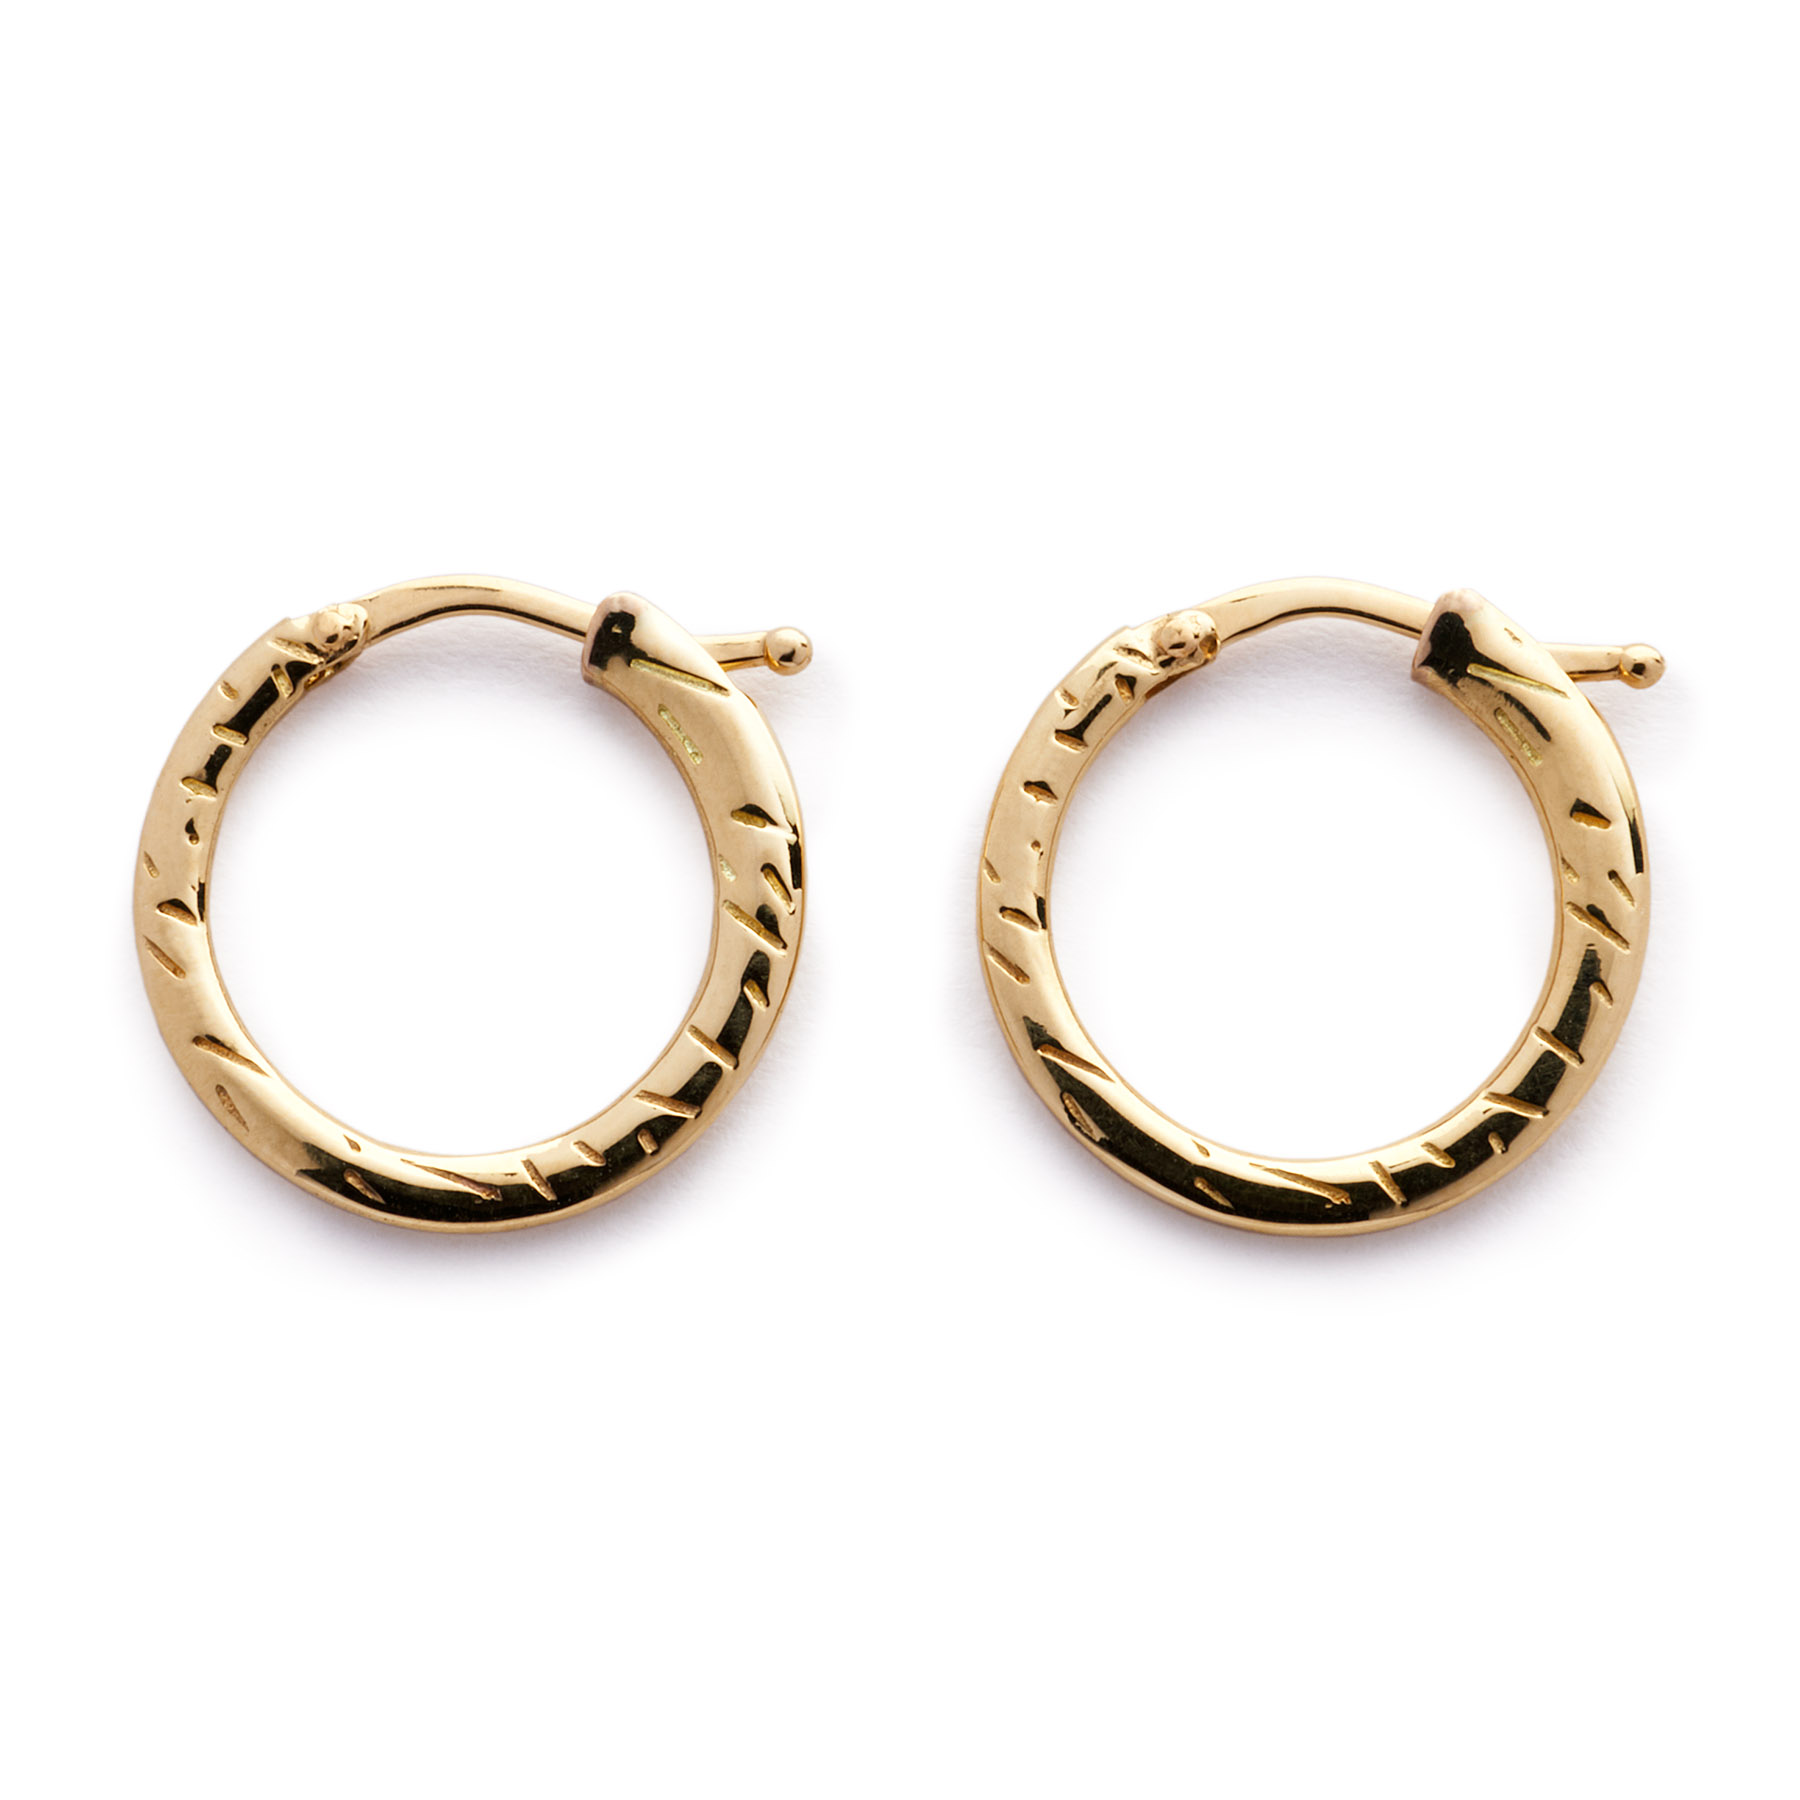 fur-hoop-earrings-FC9A-1.jpg